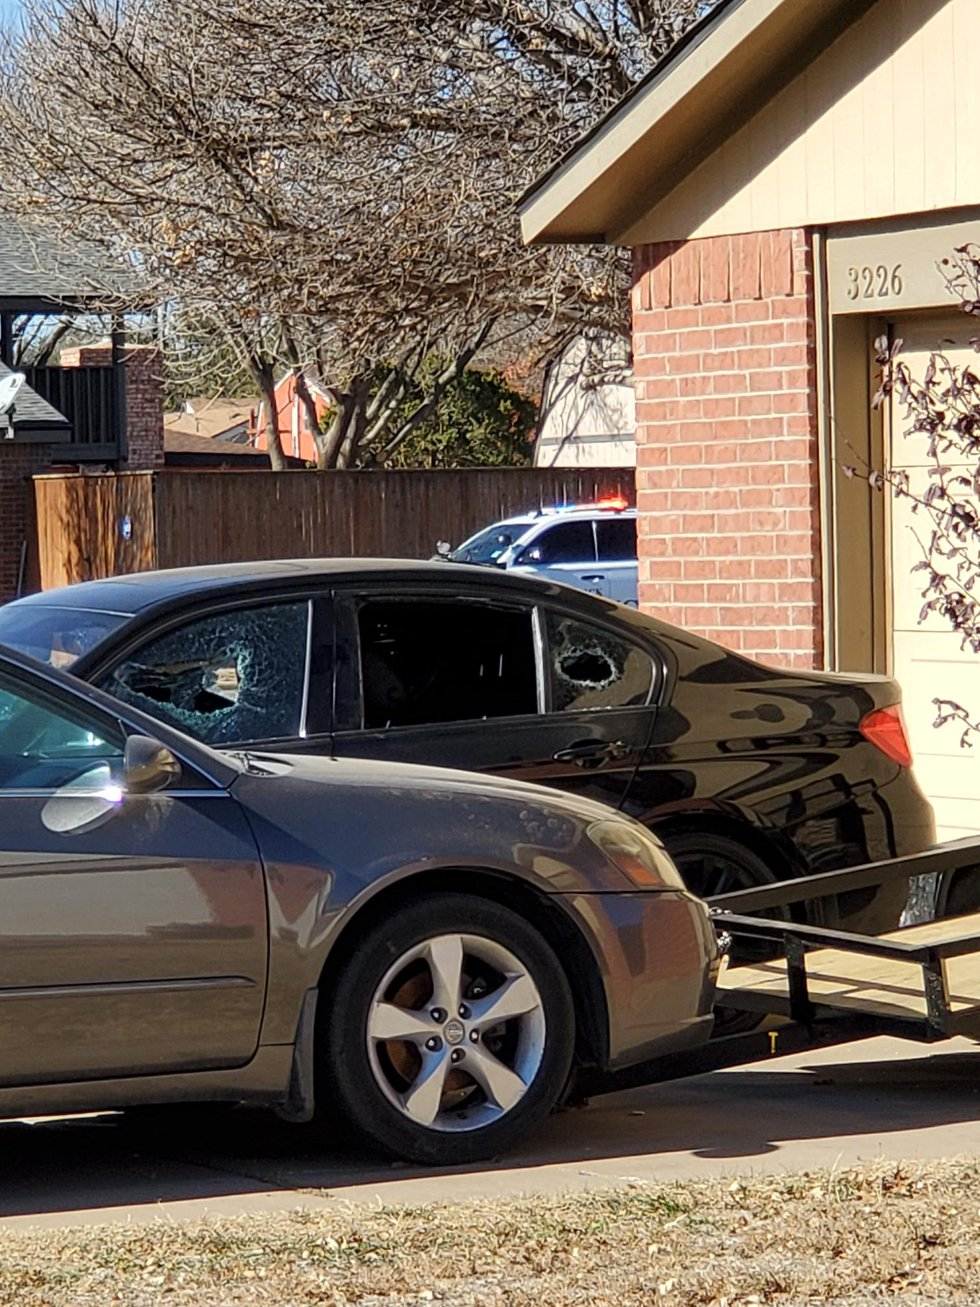 A suspect fired a shotgun at a vehicle and a house in the 3300 block of 90th Street on Dec. 9,...